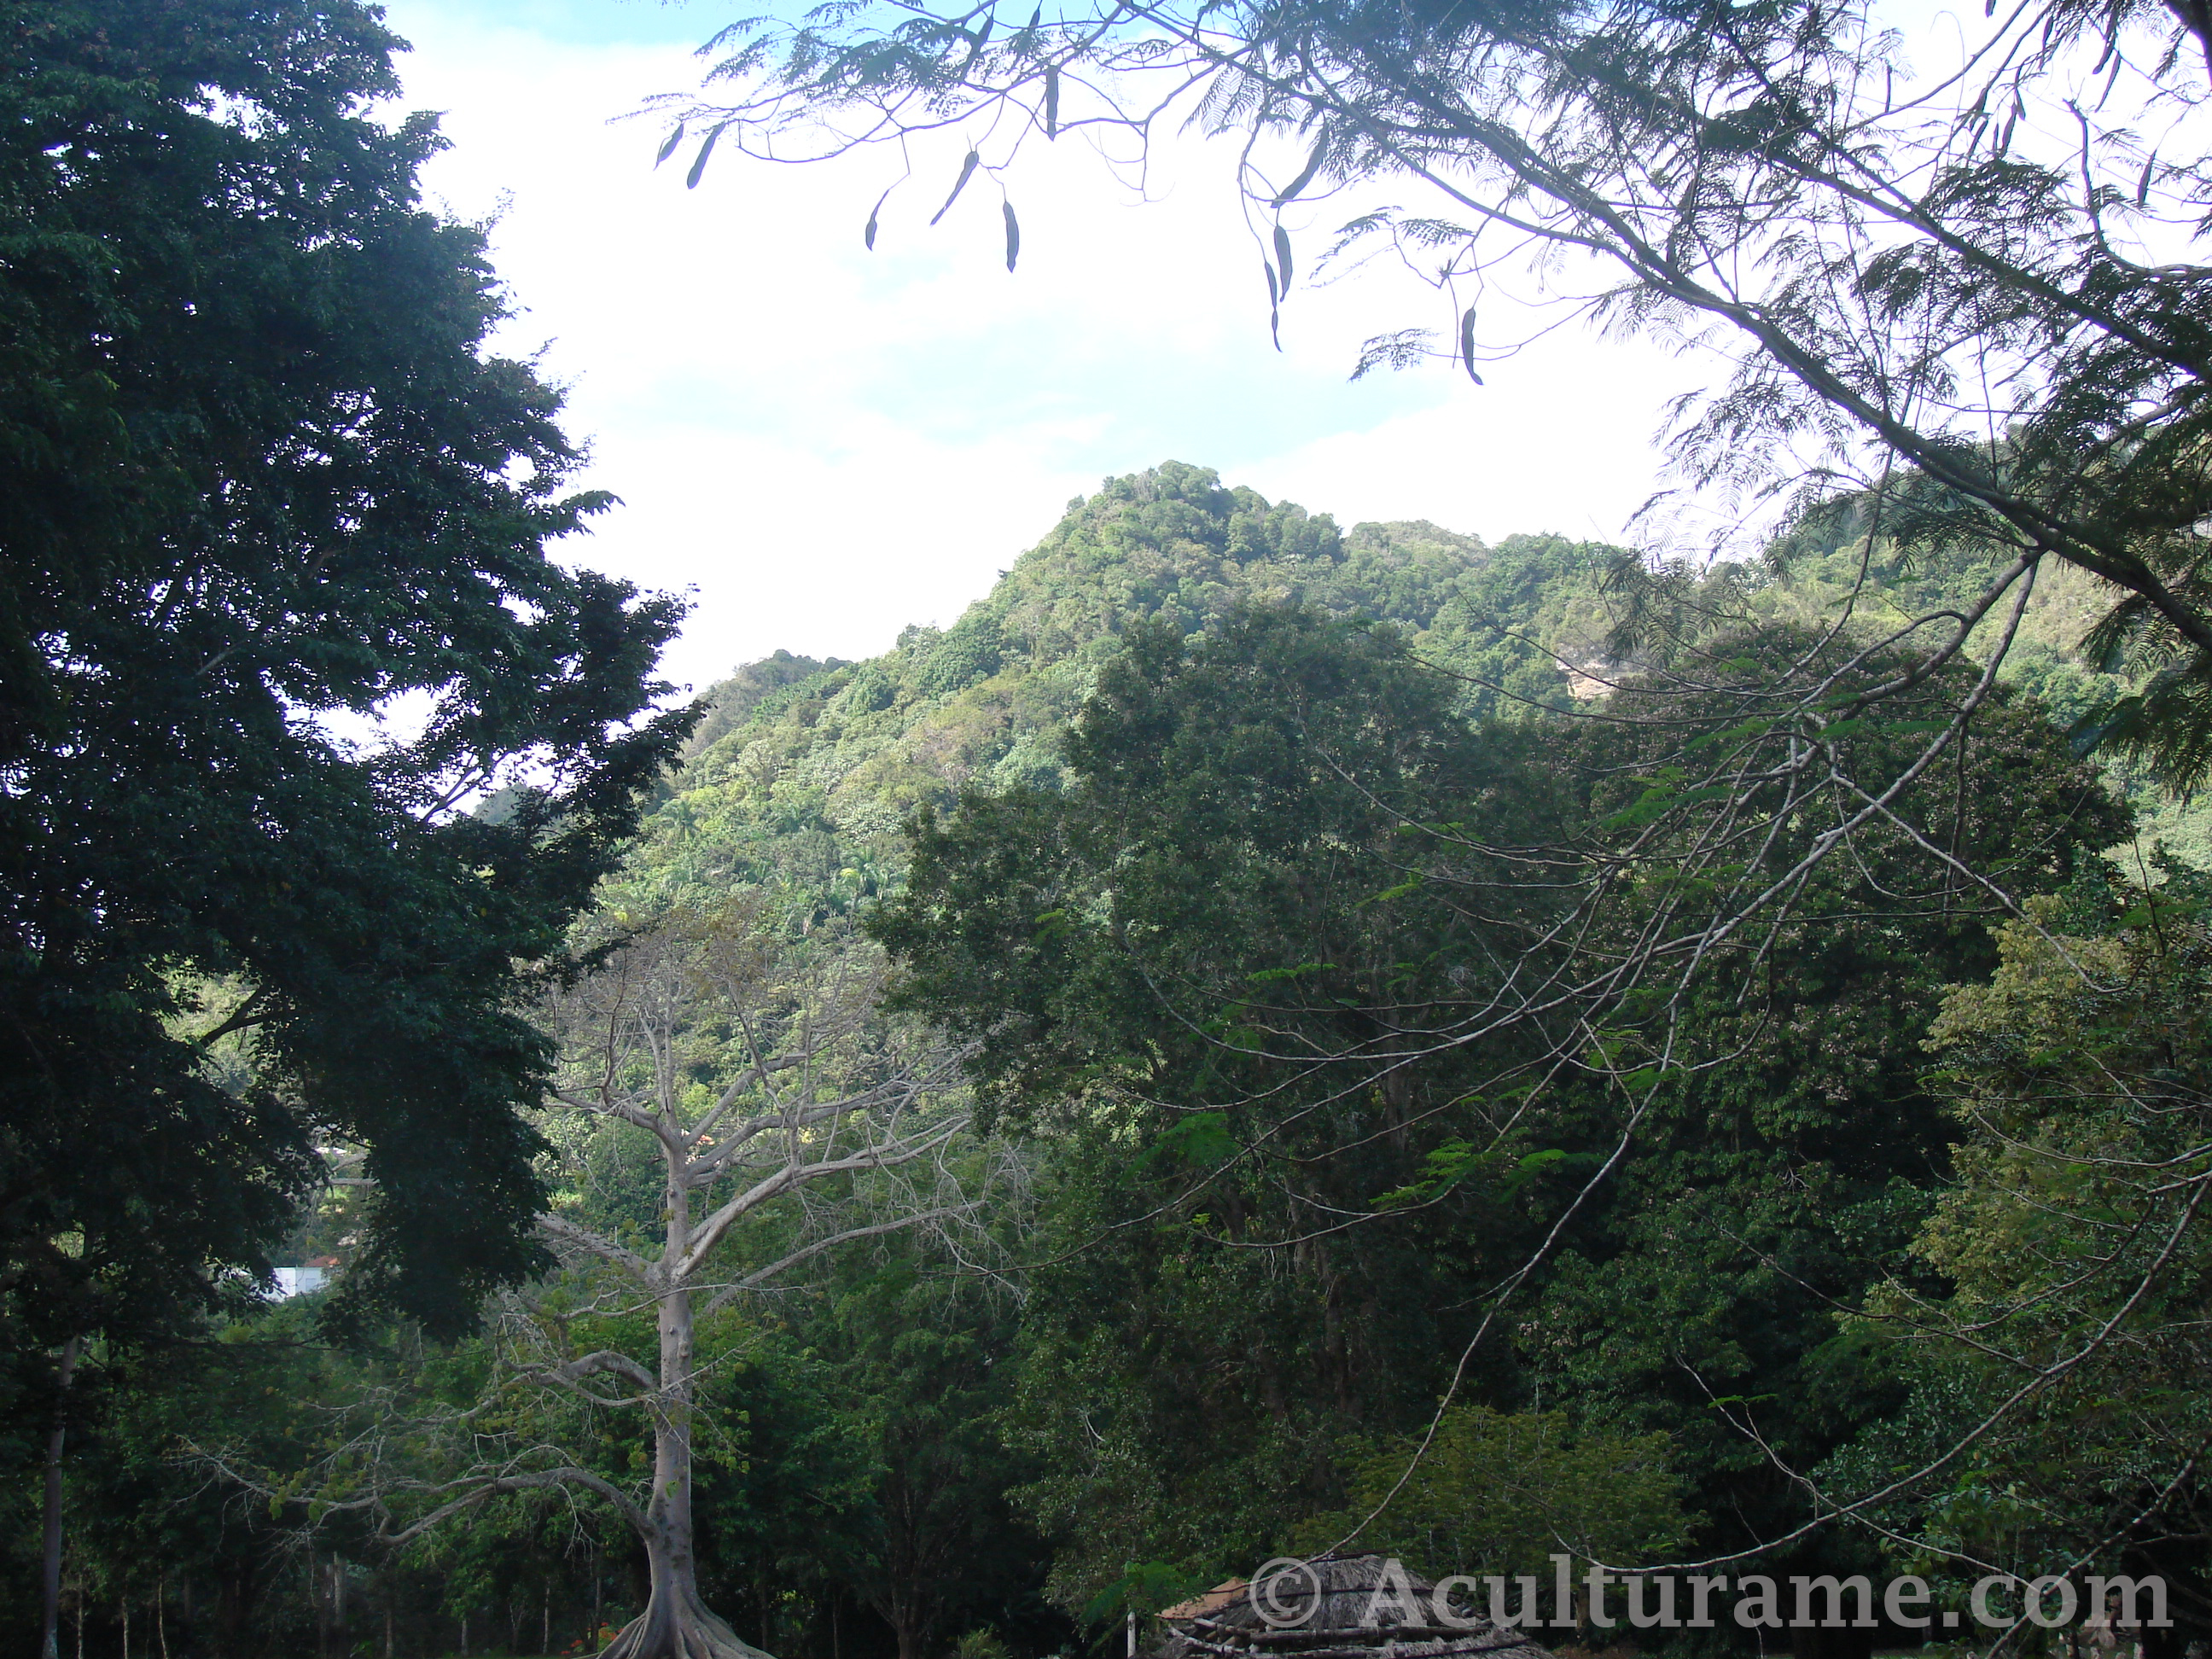 Our Visit to the Caguana Indigenous Ceremonial Park